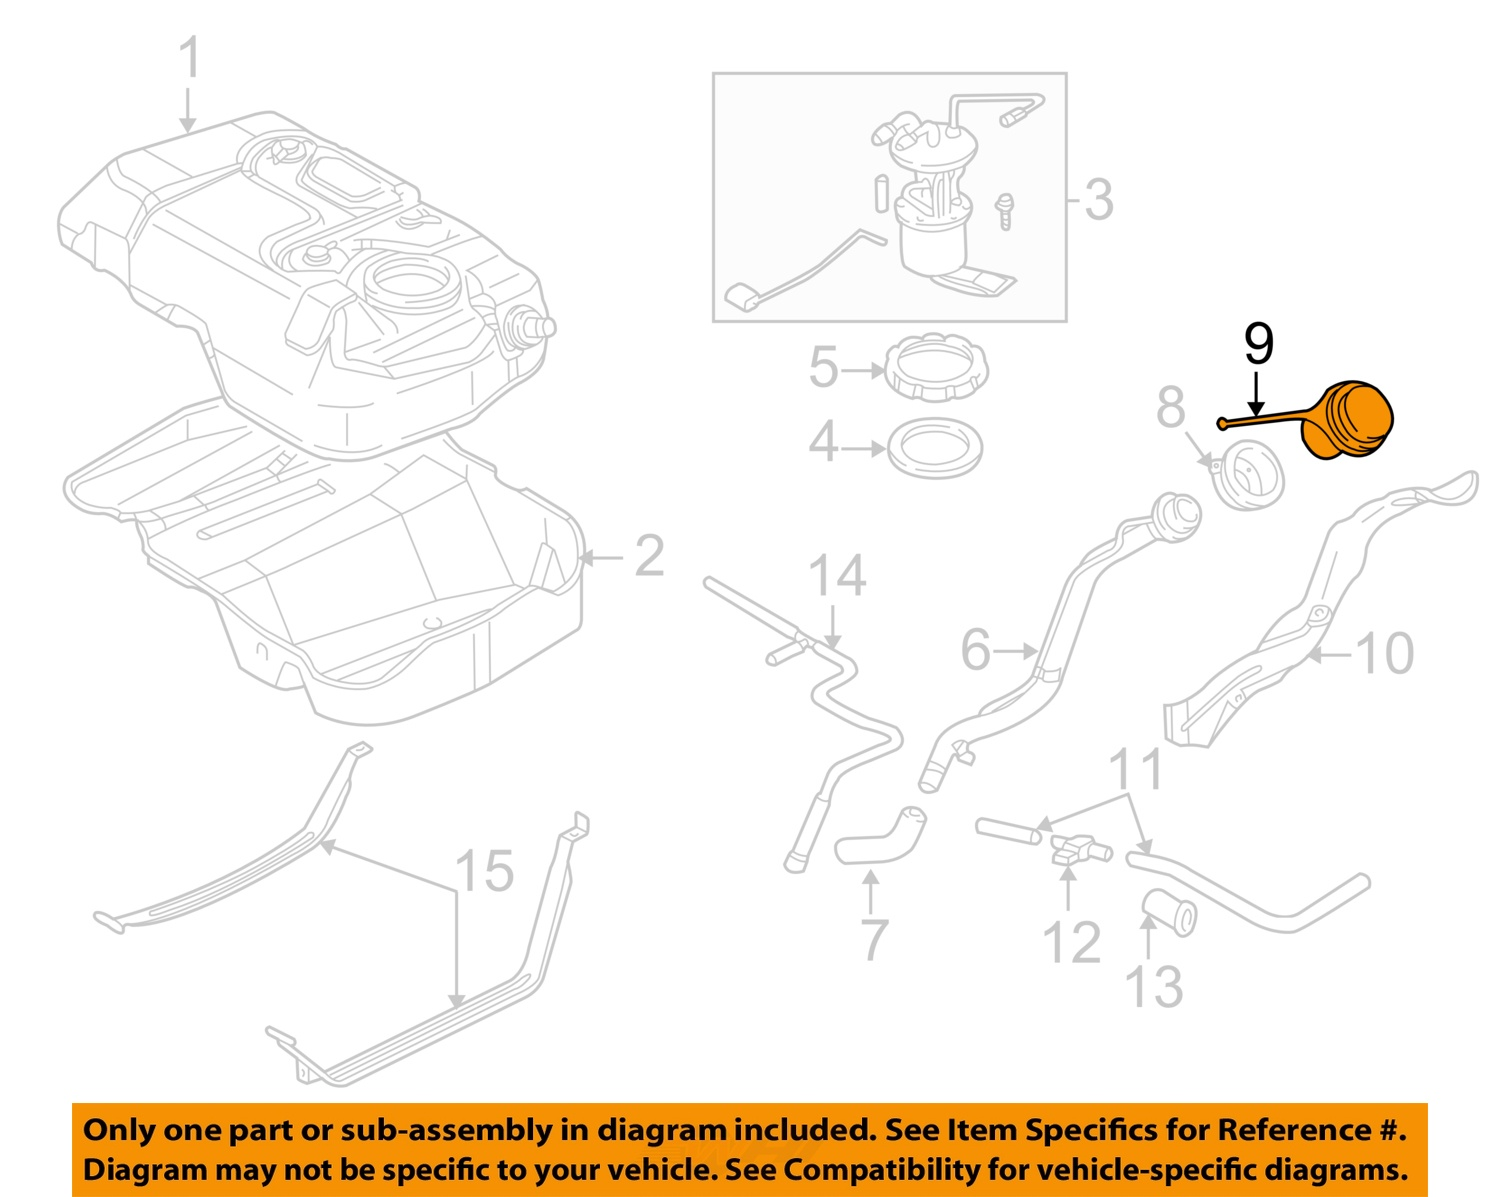 hight resolution of wiring diagram and fuse box 05 ford escape 3 0 engine diagram ford oem 01 05 escape 3 0l